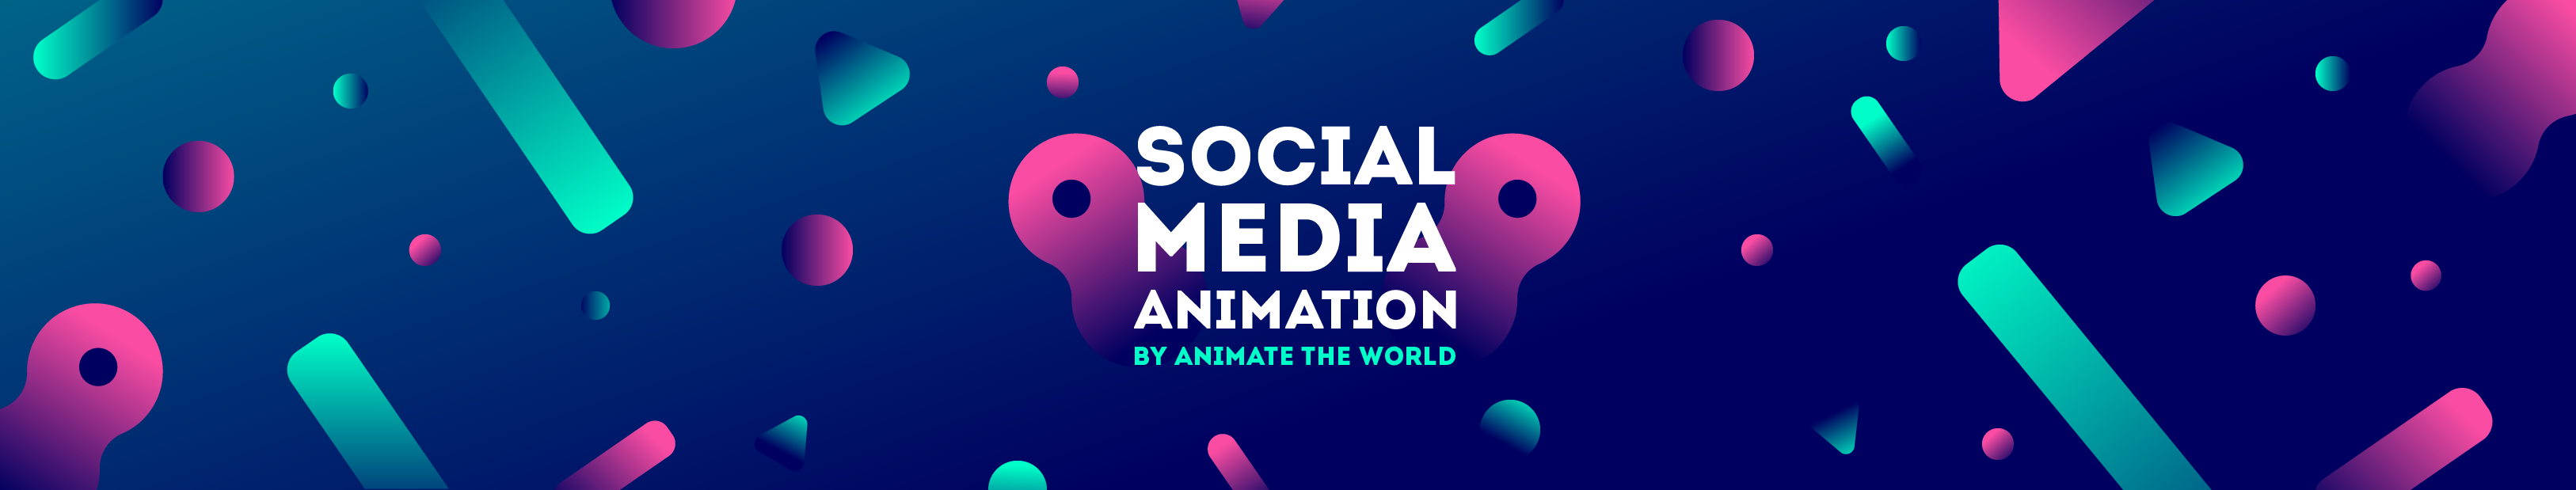 Social animation header